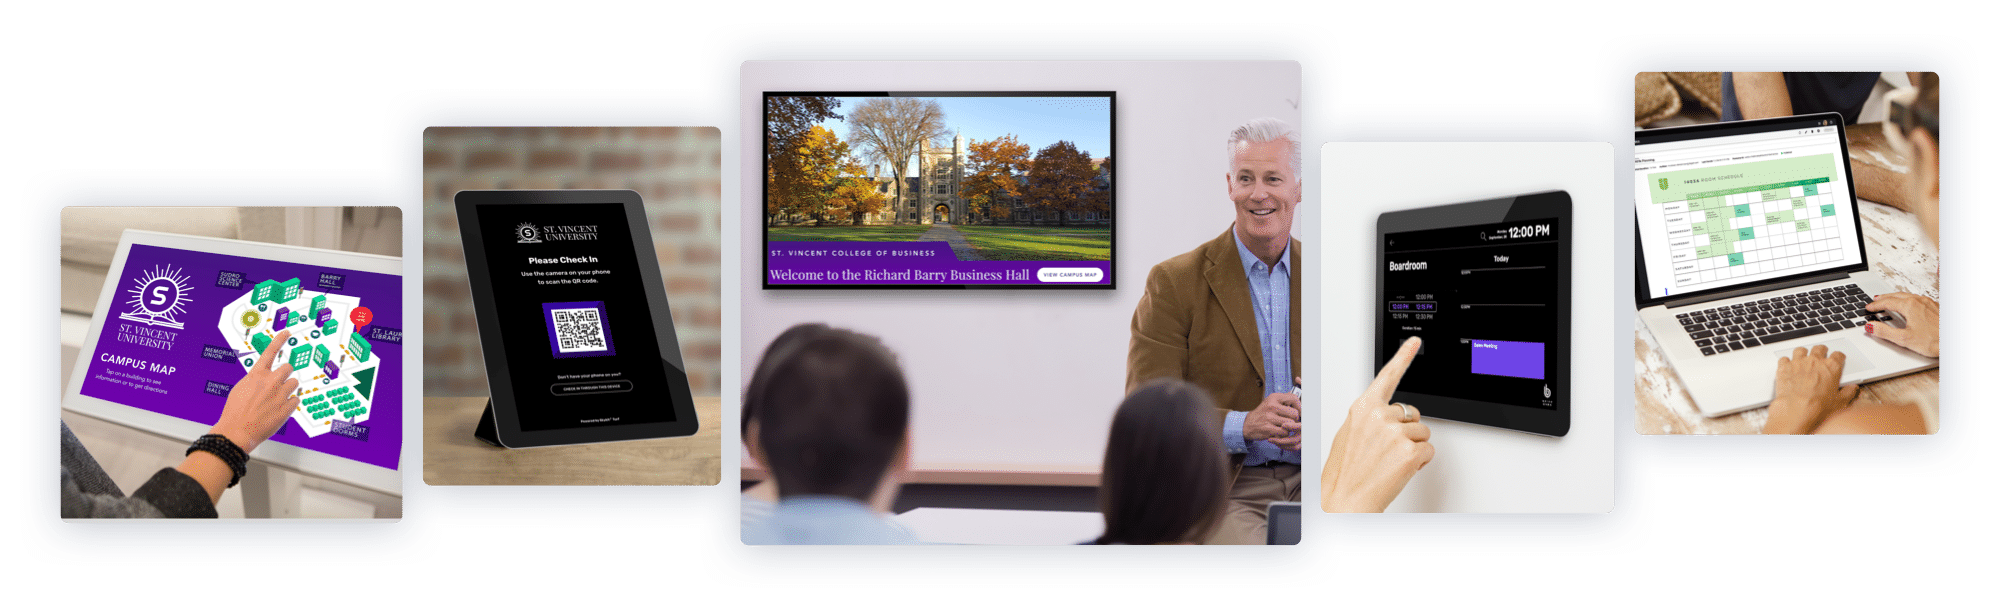 Skykit Beam Digital Signage Content Management Solution for Education and Universities - Examples